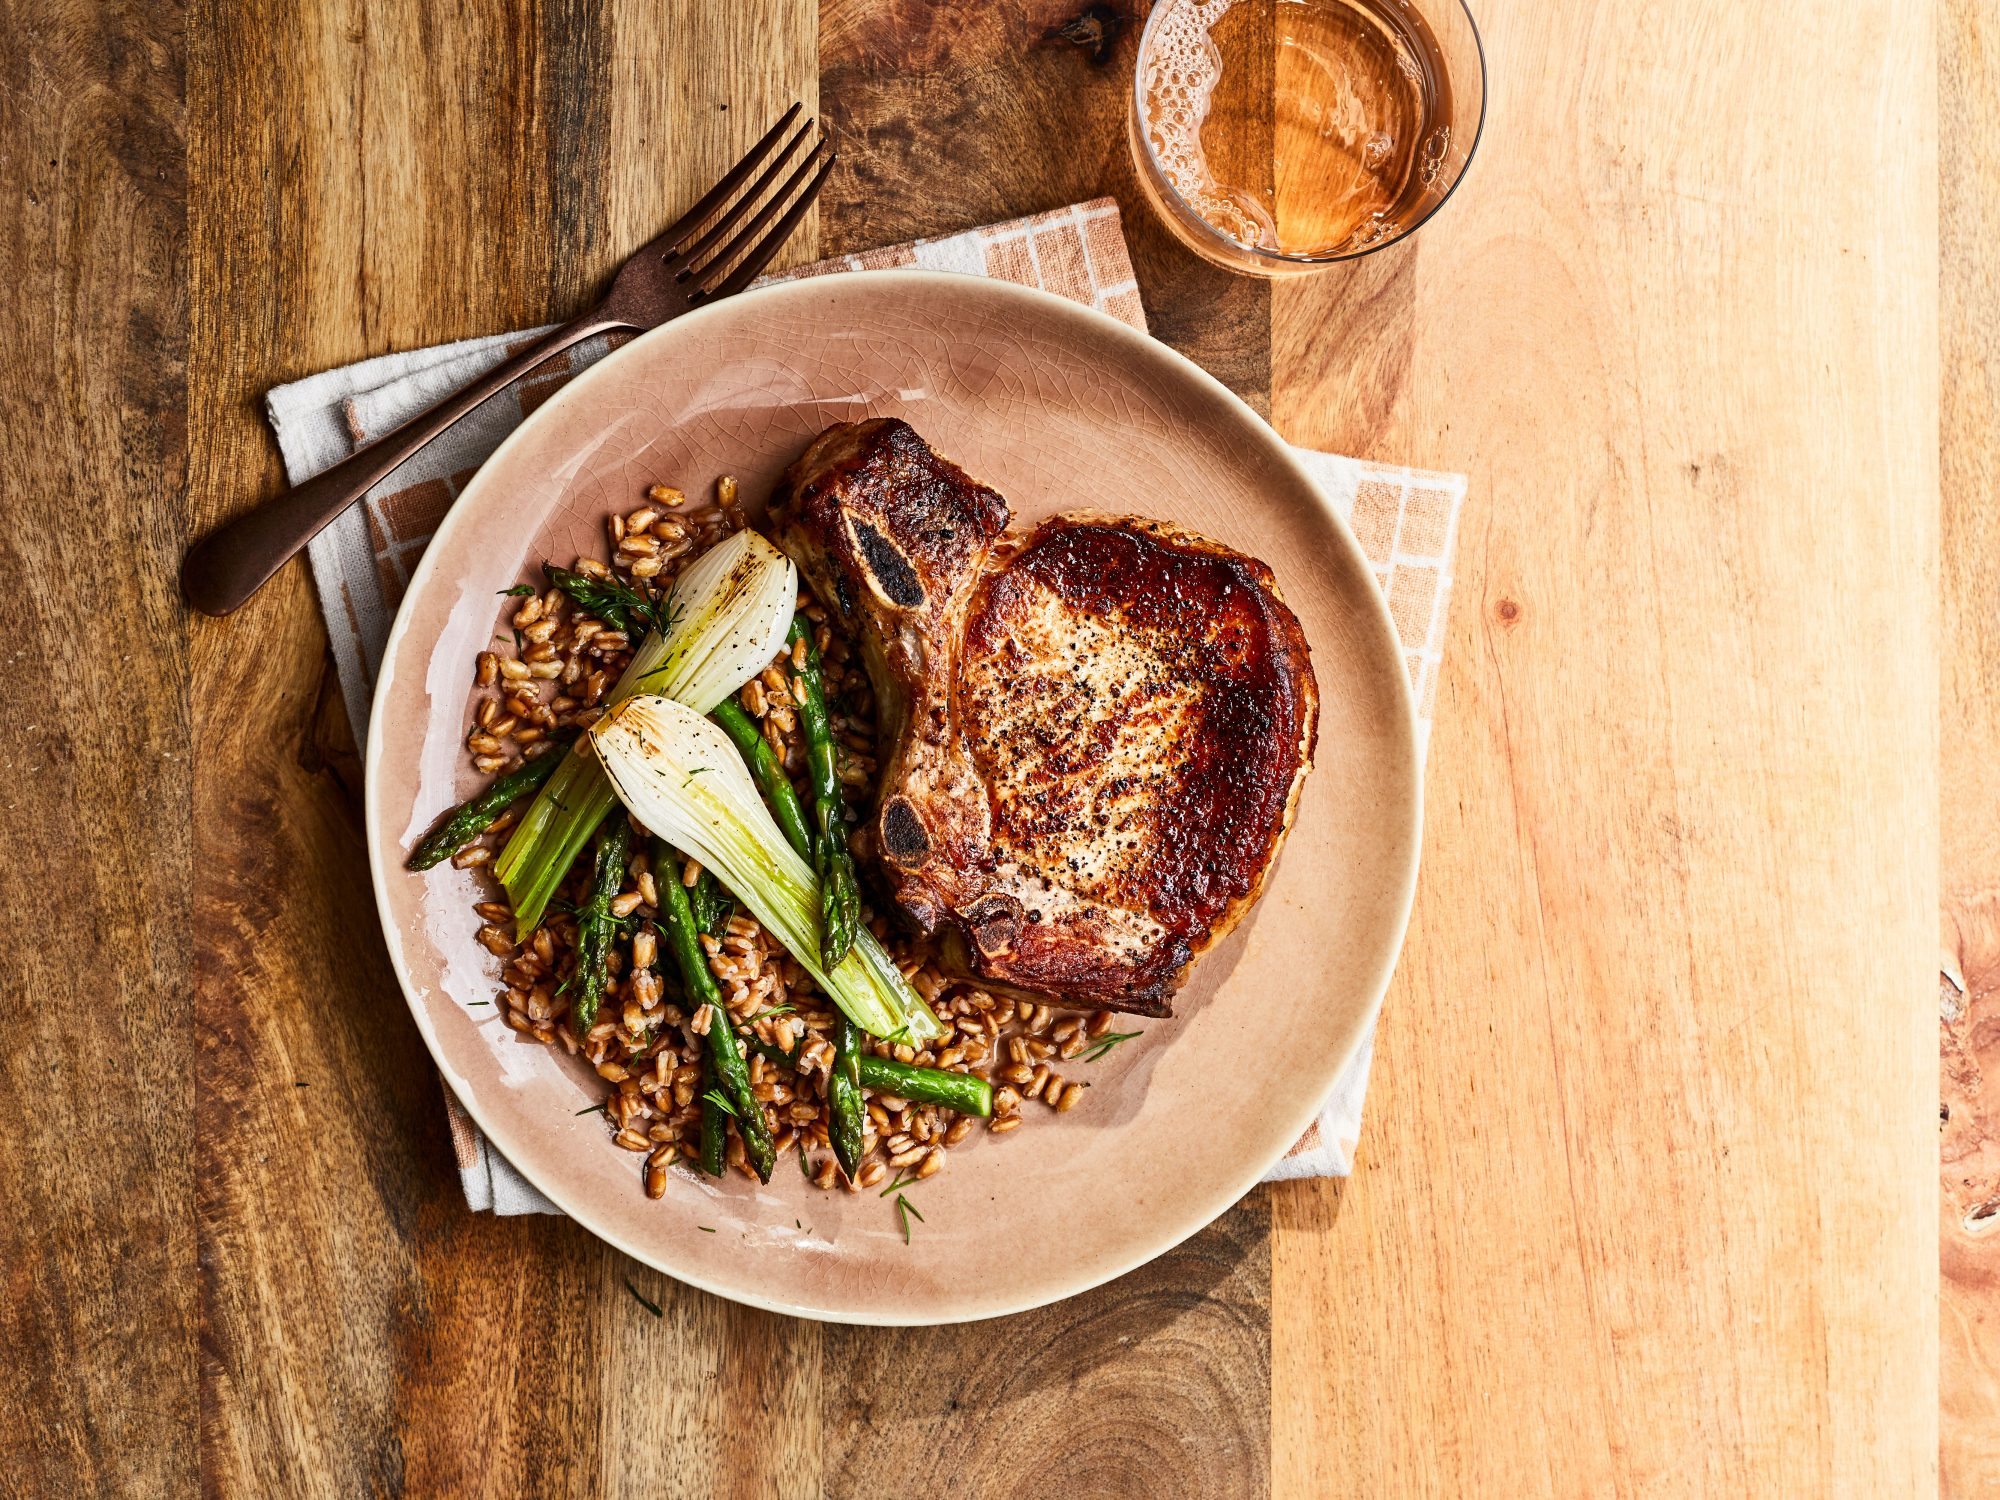 Pork Chops with Spring Onions, Farro, and Asparagus